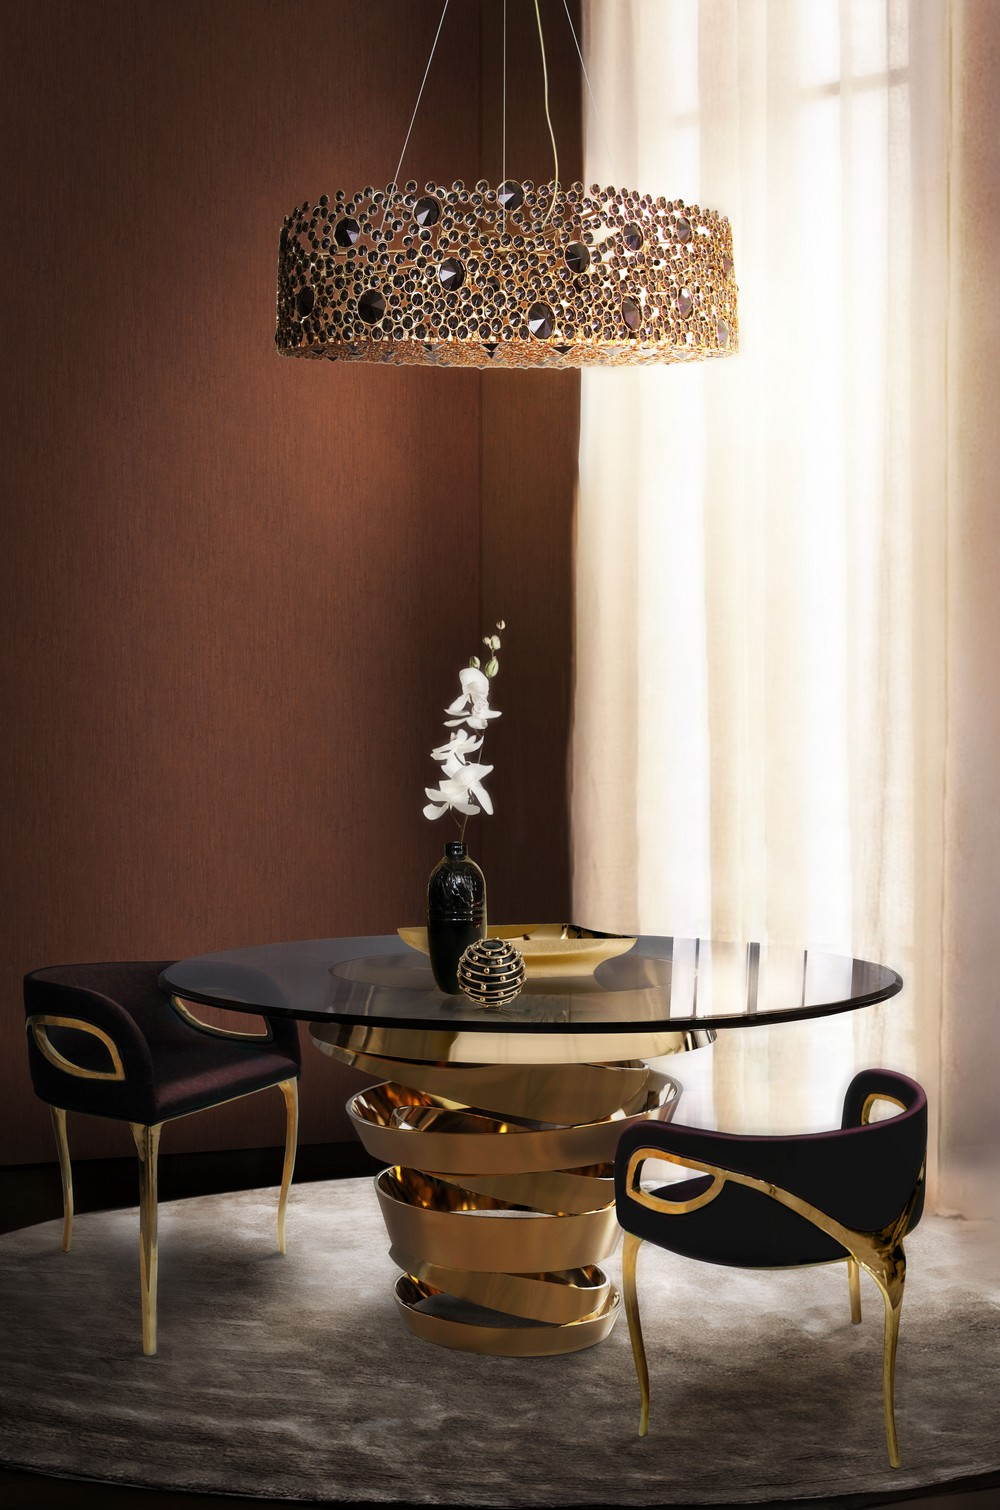 Ordinaire 10 Gorgeous Design Pieces To Create The Perfect Dining Room Design Pieces  10 Gorgeous Design Pieces